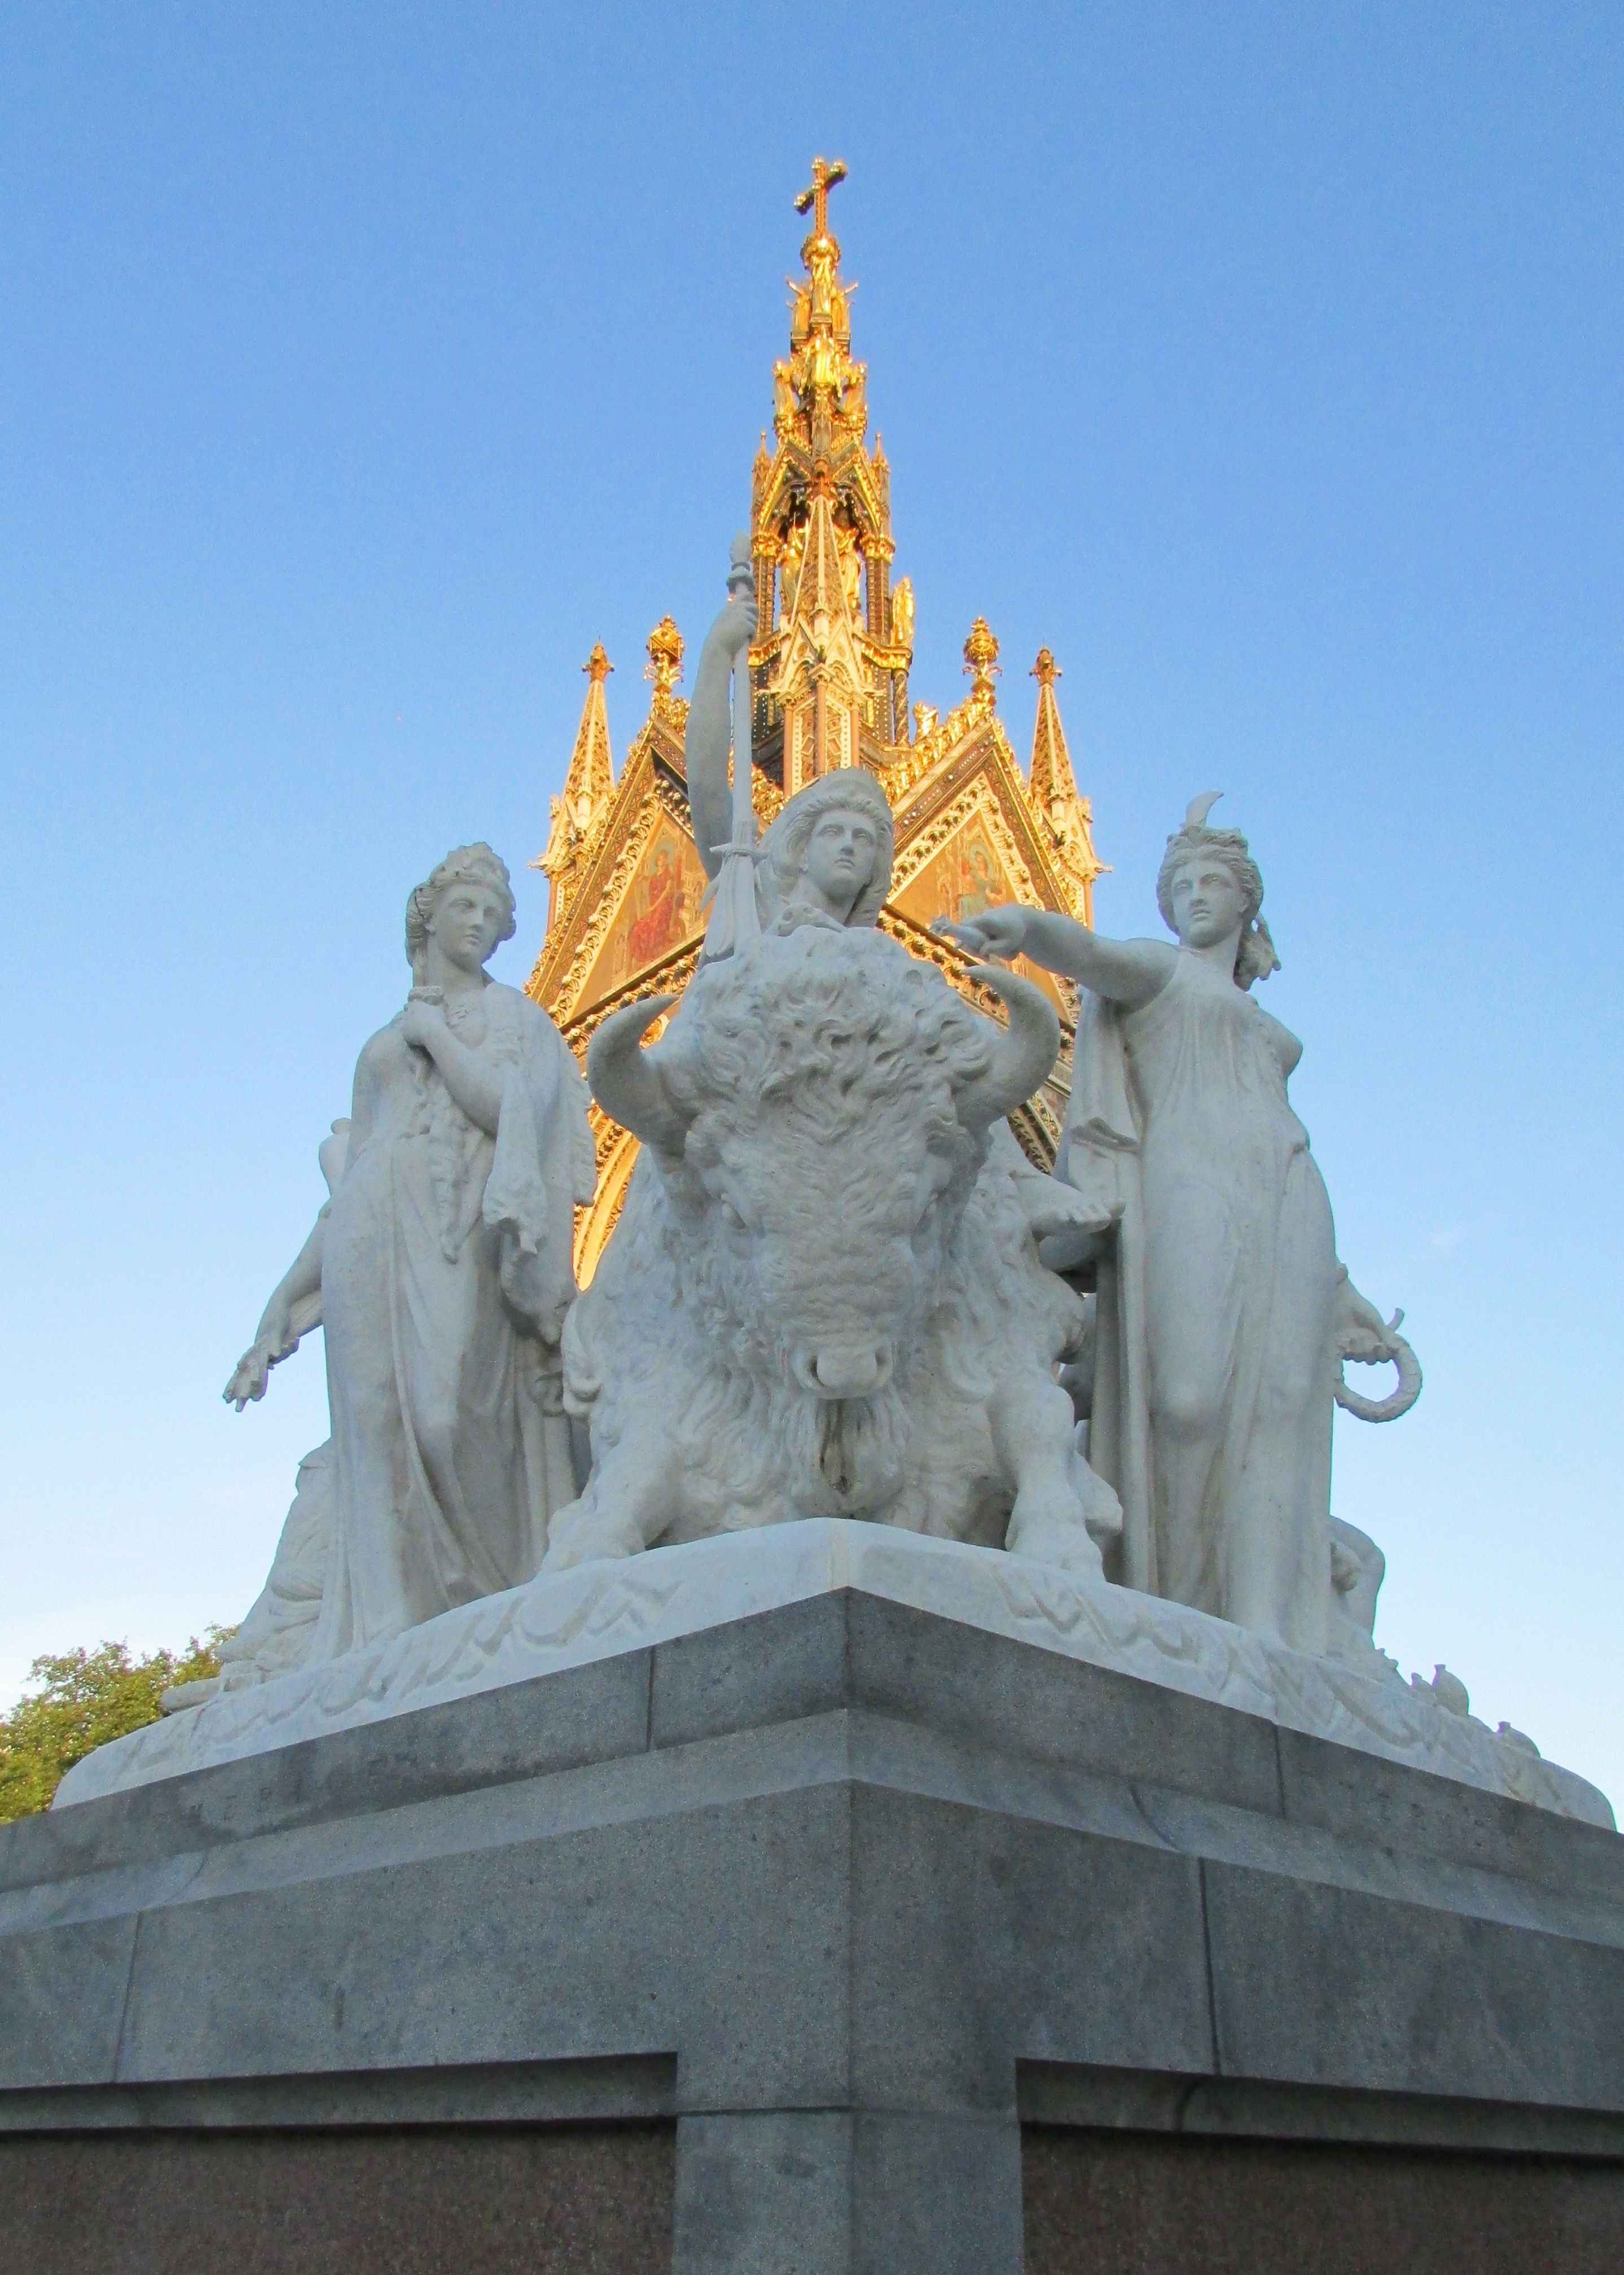 Inspirational statue at one corner of the Prince Albert Memorial, Hyde Park, London.